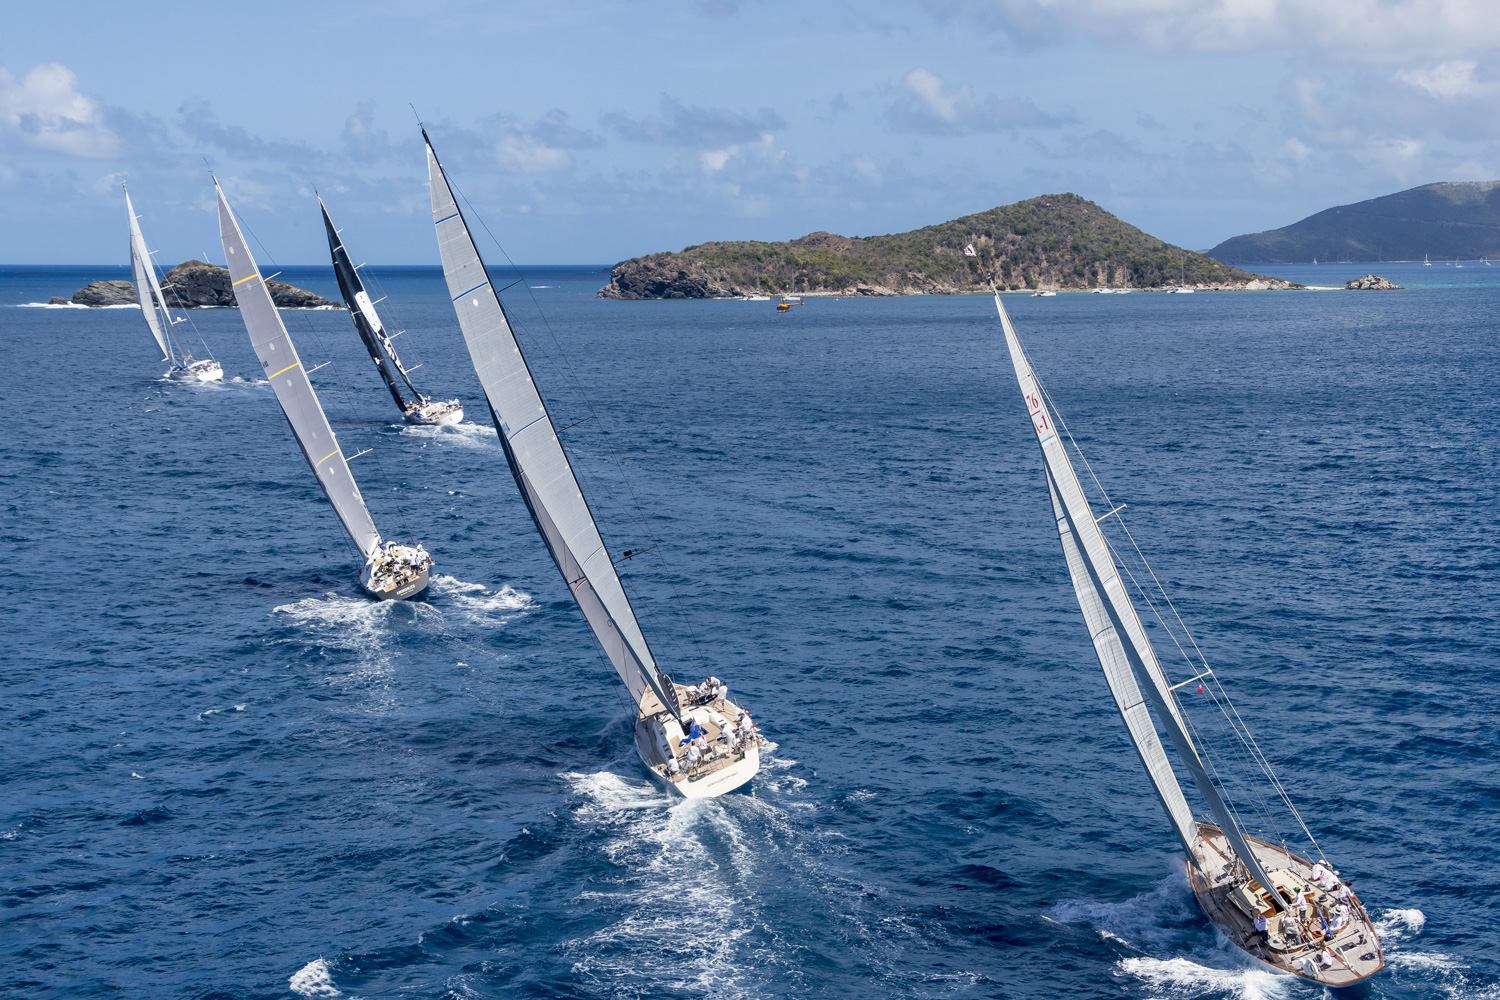 Caribbean regatta season cancelled - NEWS - Yacht Club Costa Smeralda